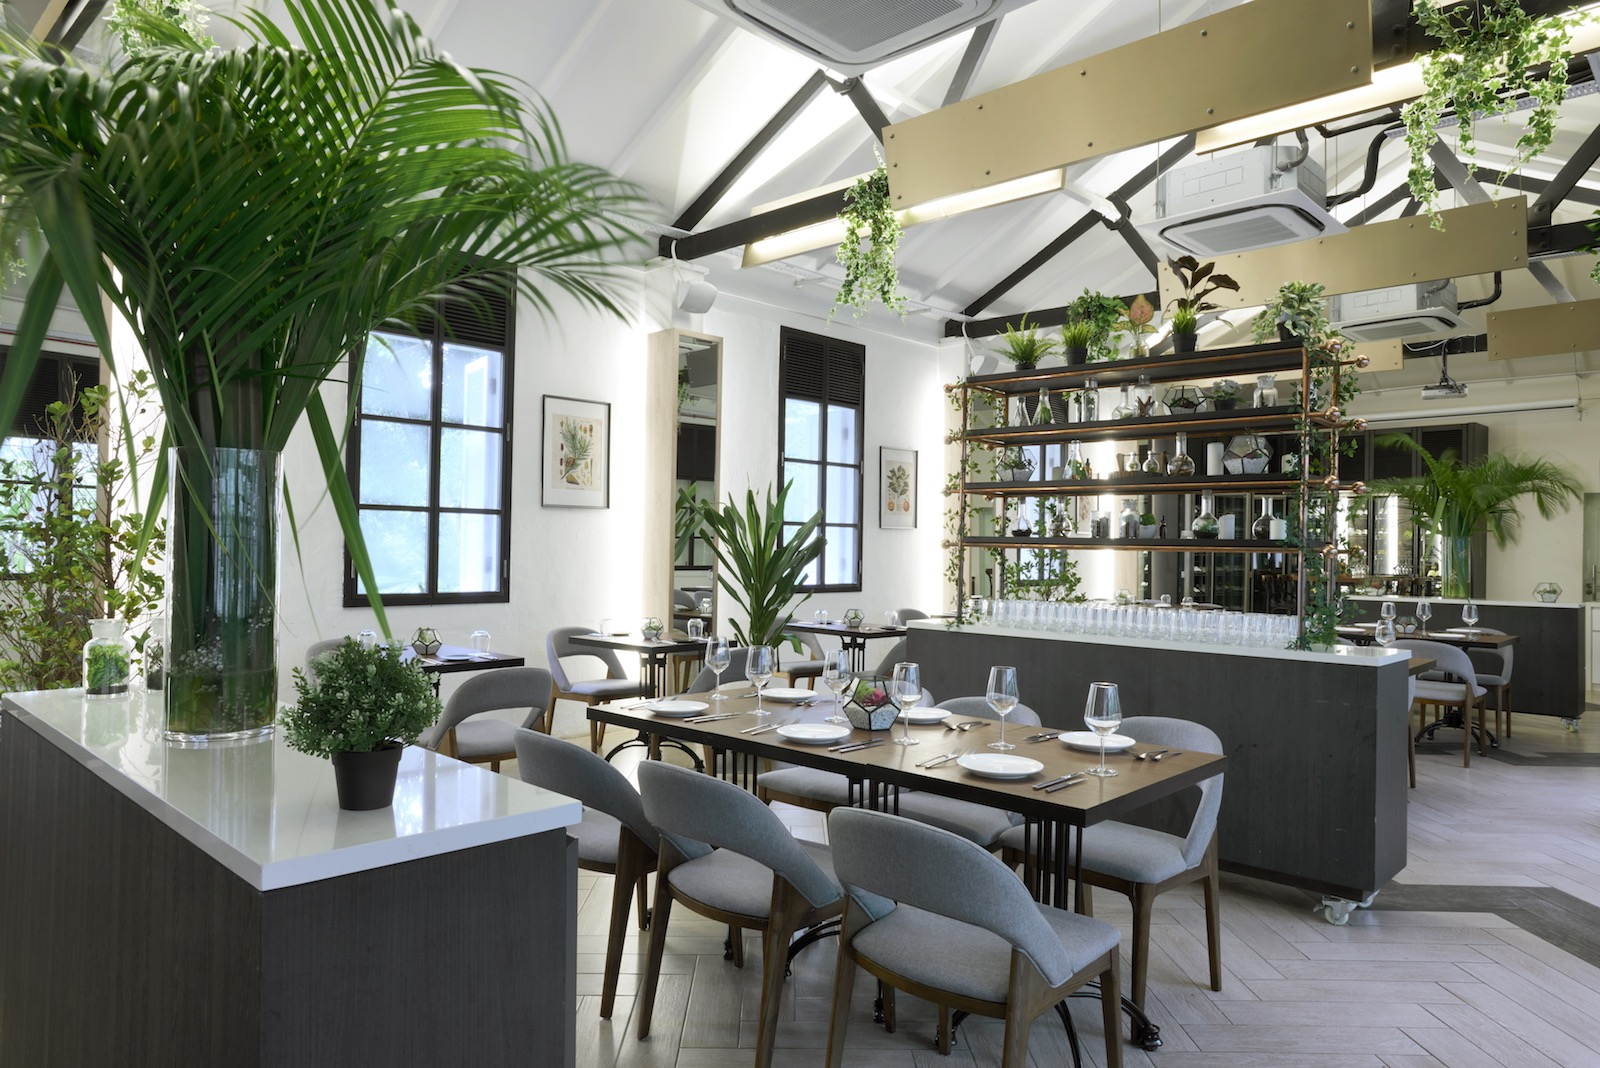 The Garage All Day Dining Options At Singapore Botanic Gardens Asia Bars Restaurants